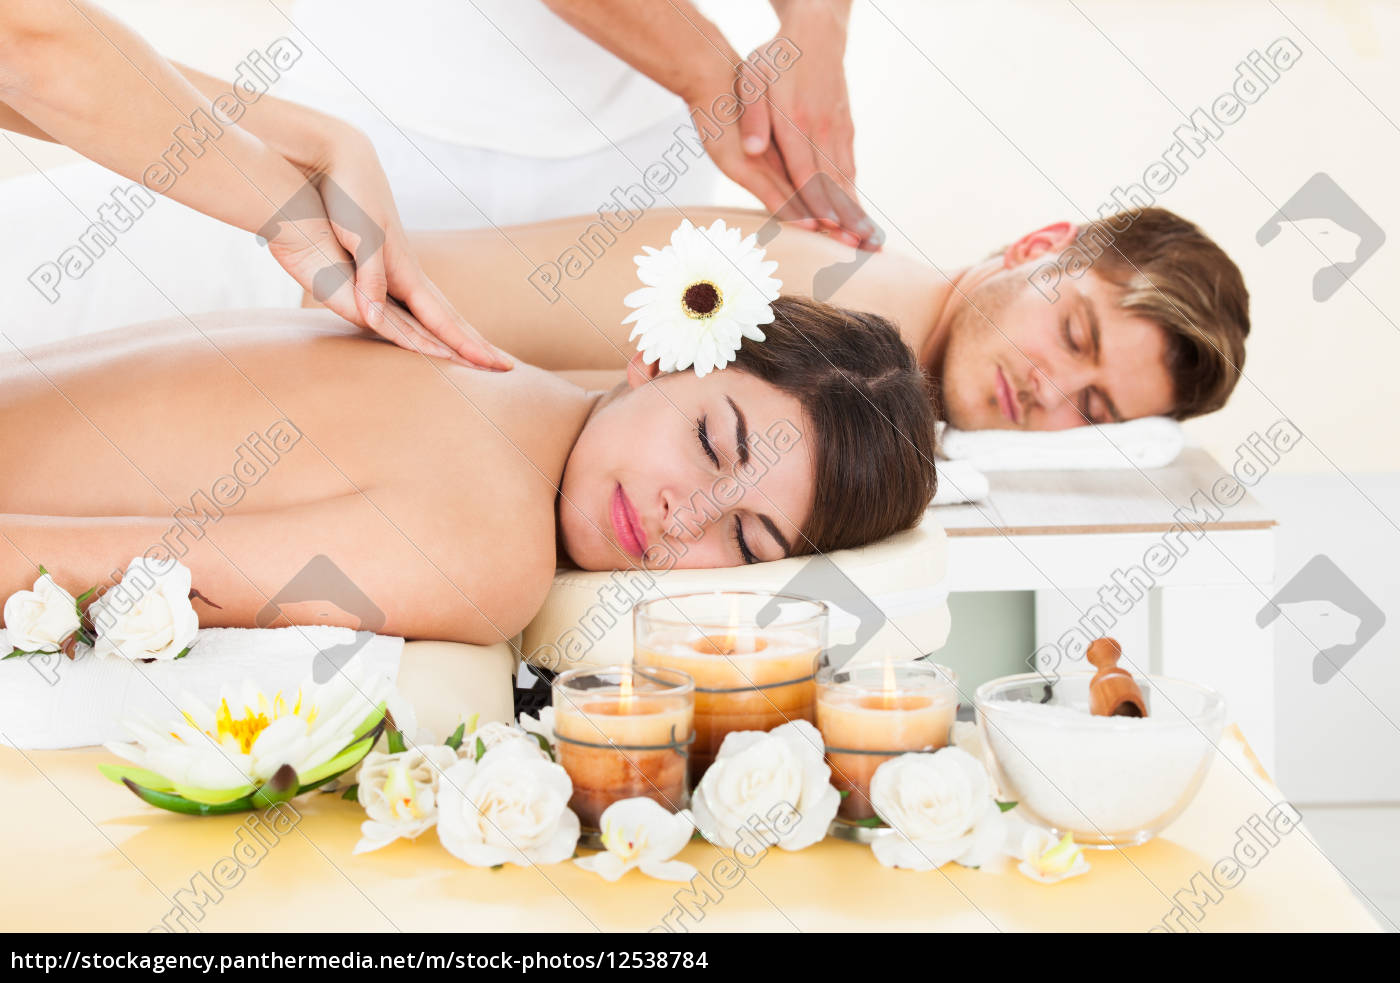 couple, receiving, massage, at, spa - 12538784